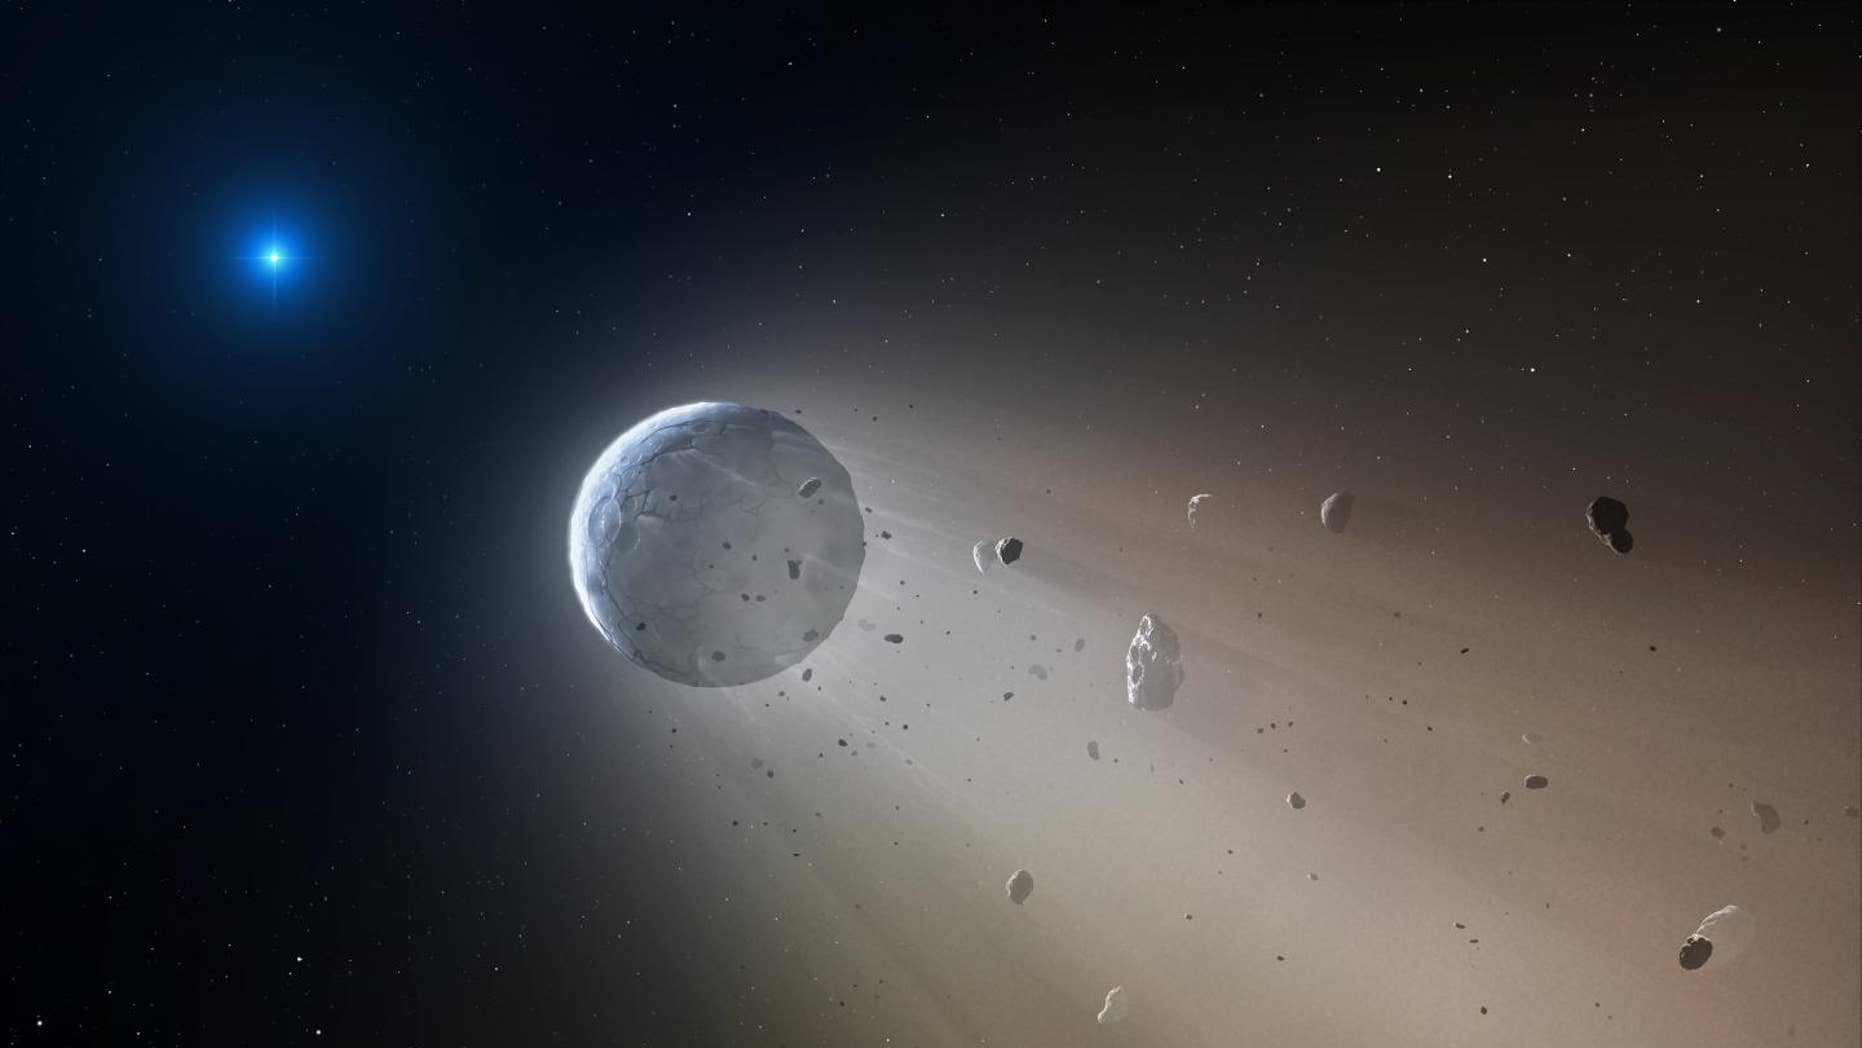 The concept of an asteroid artist like Ceres